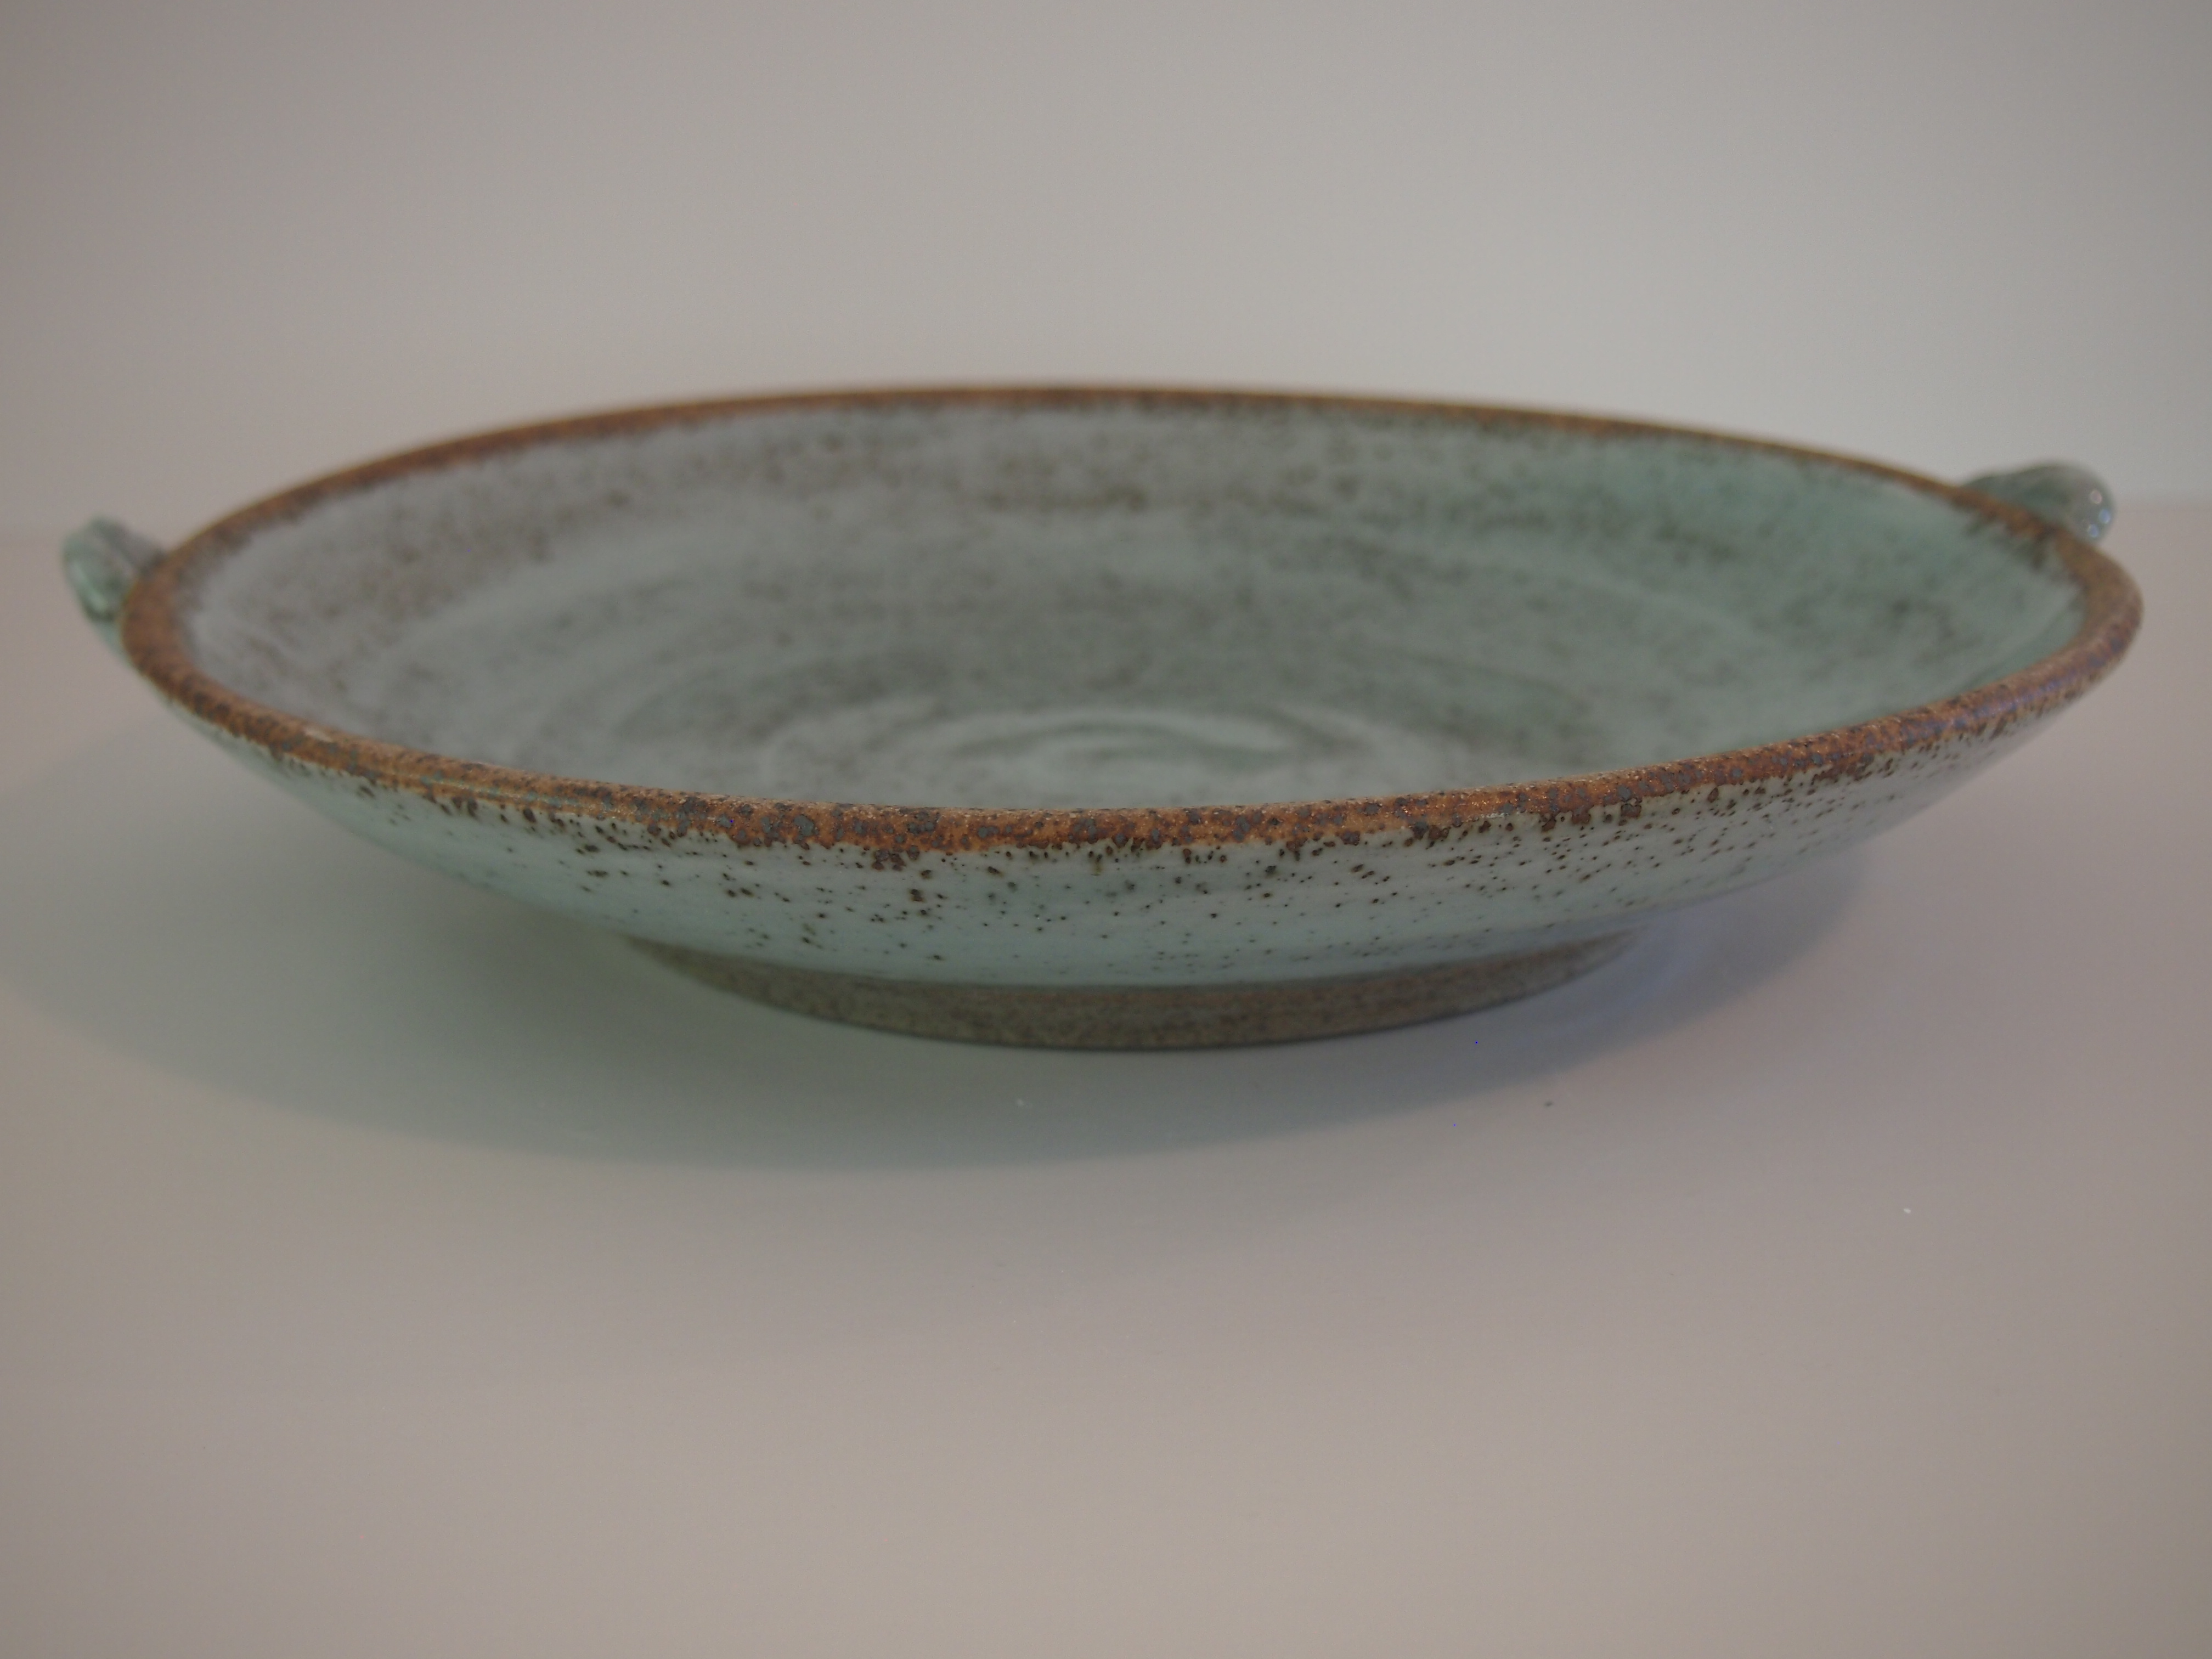 Slipped and glazed platter with handles